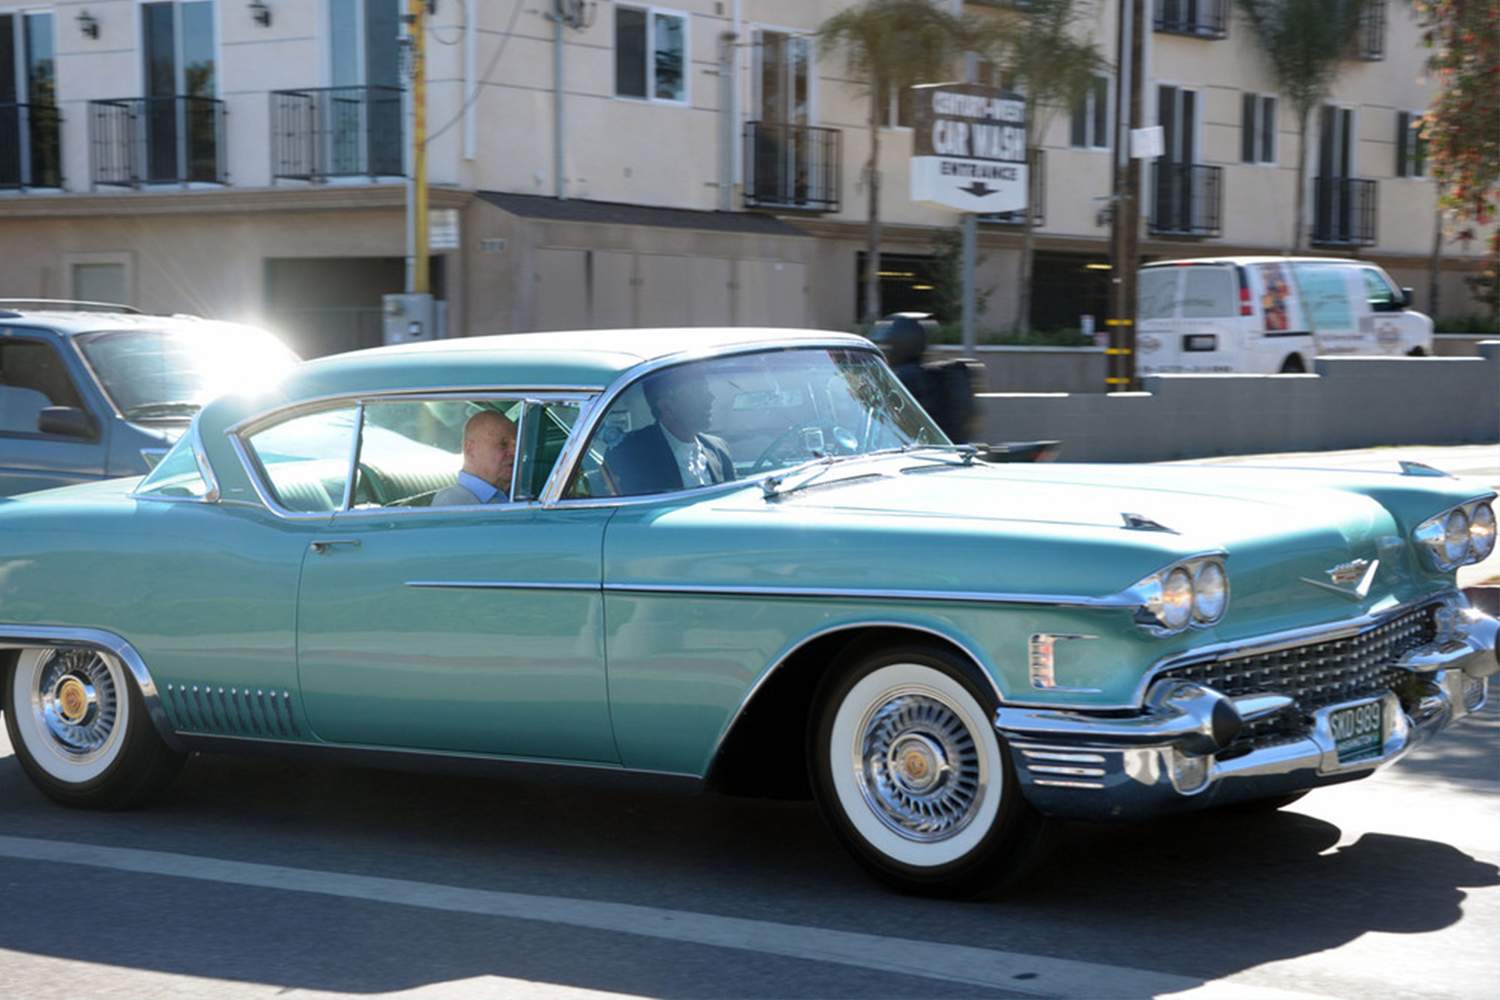 1958 Cadillac Eldorado Comedians in Cars Getting Coffee